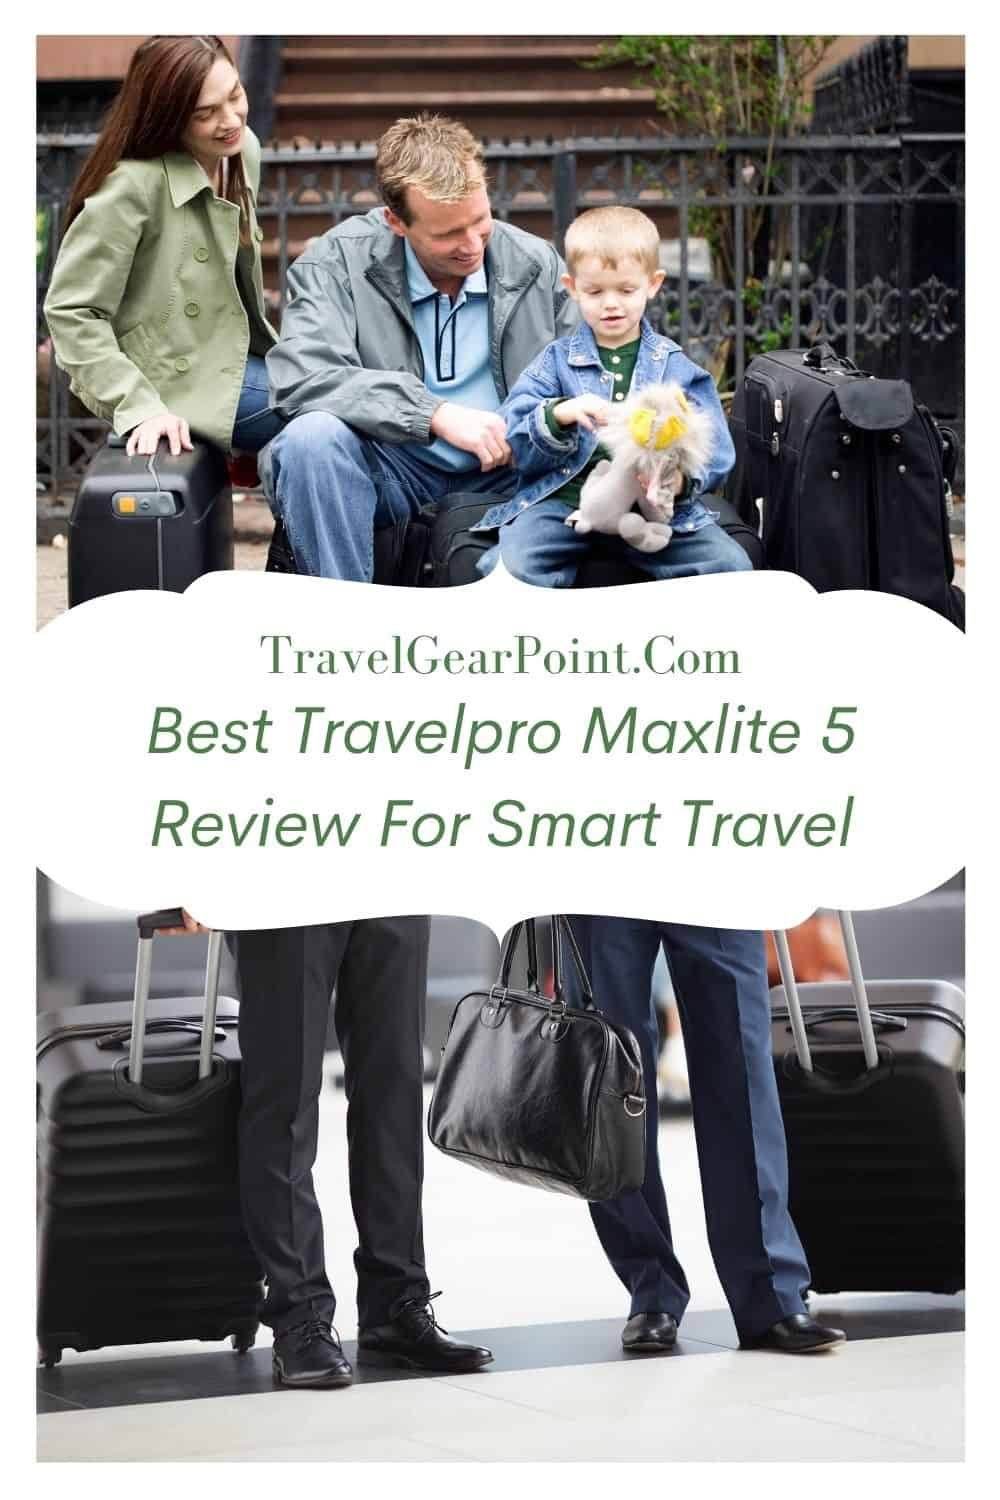 Best Travelpro Maxlite 5 Review For Smart Travel